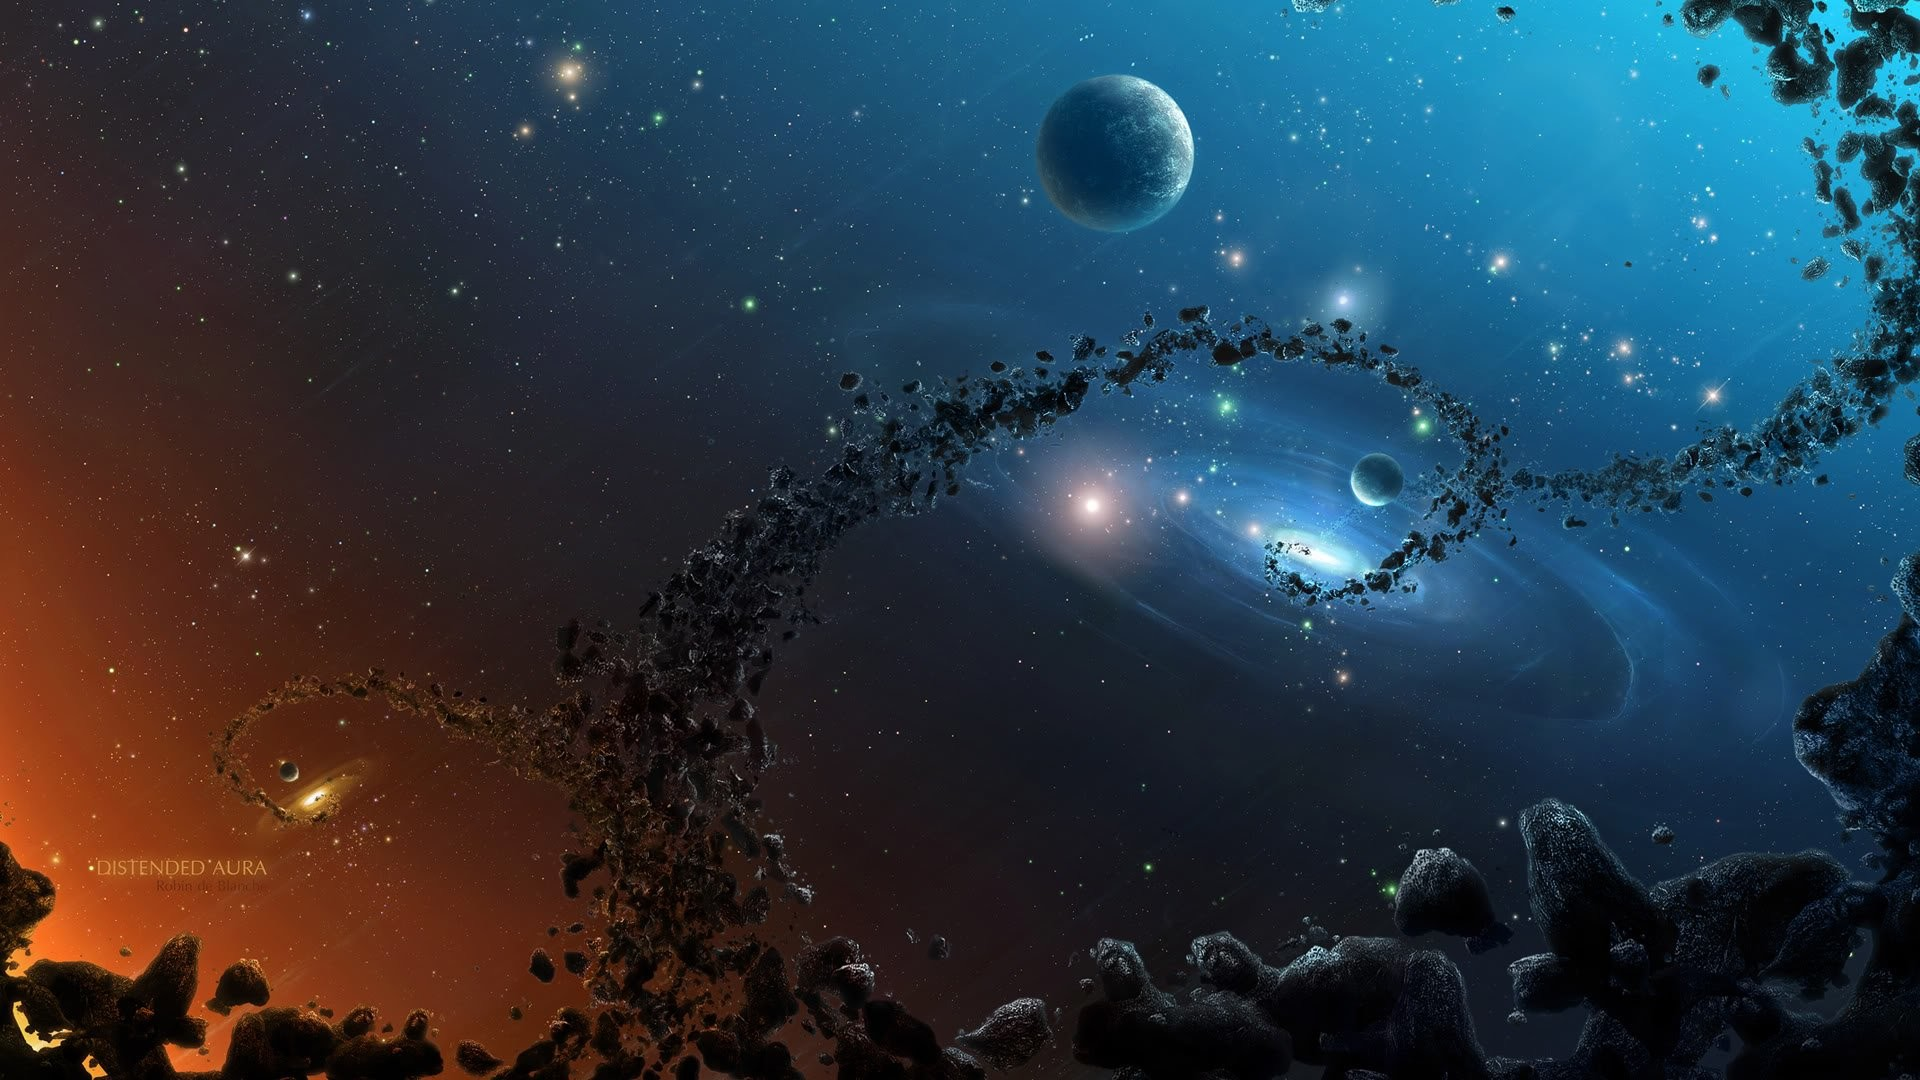 Space animated wallpaper 67 images - Anime moving wallpaper for pc ...